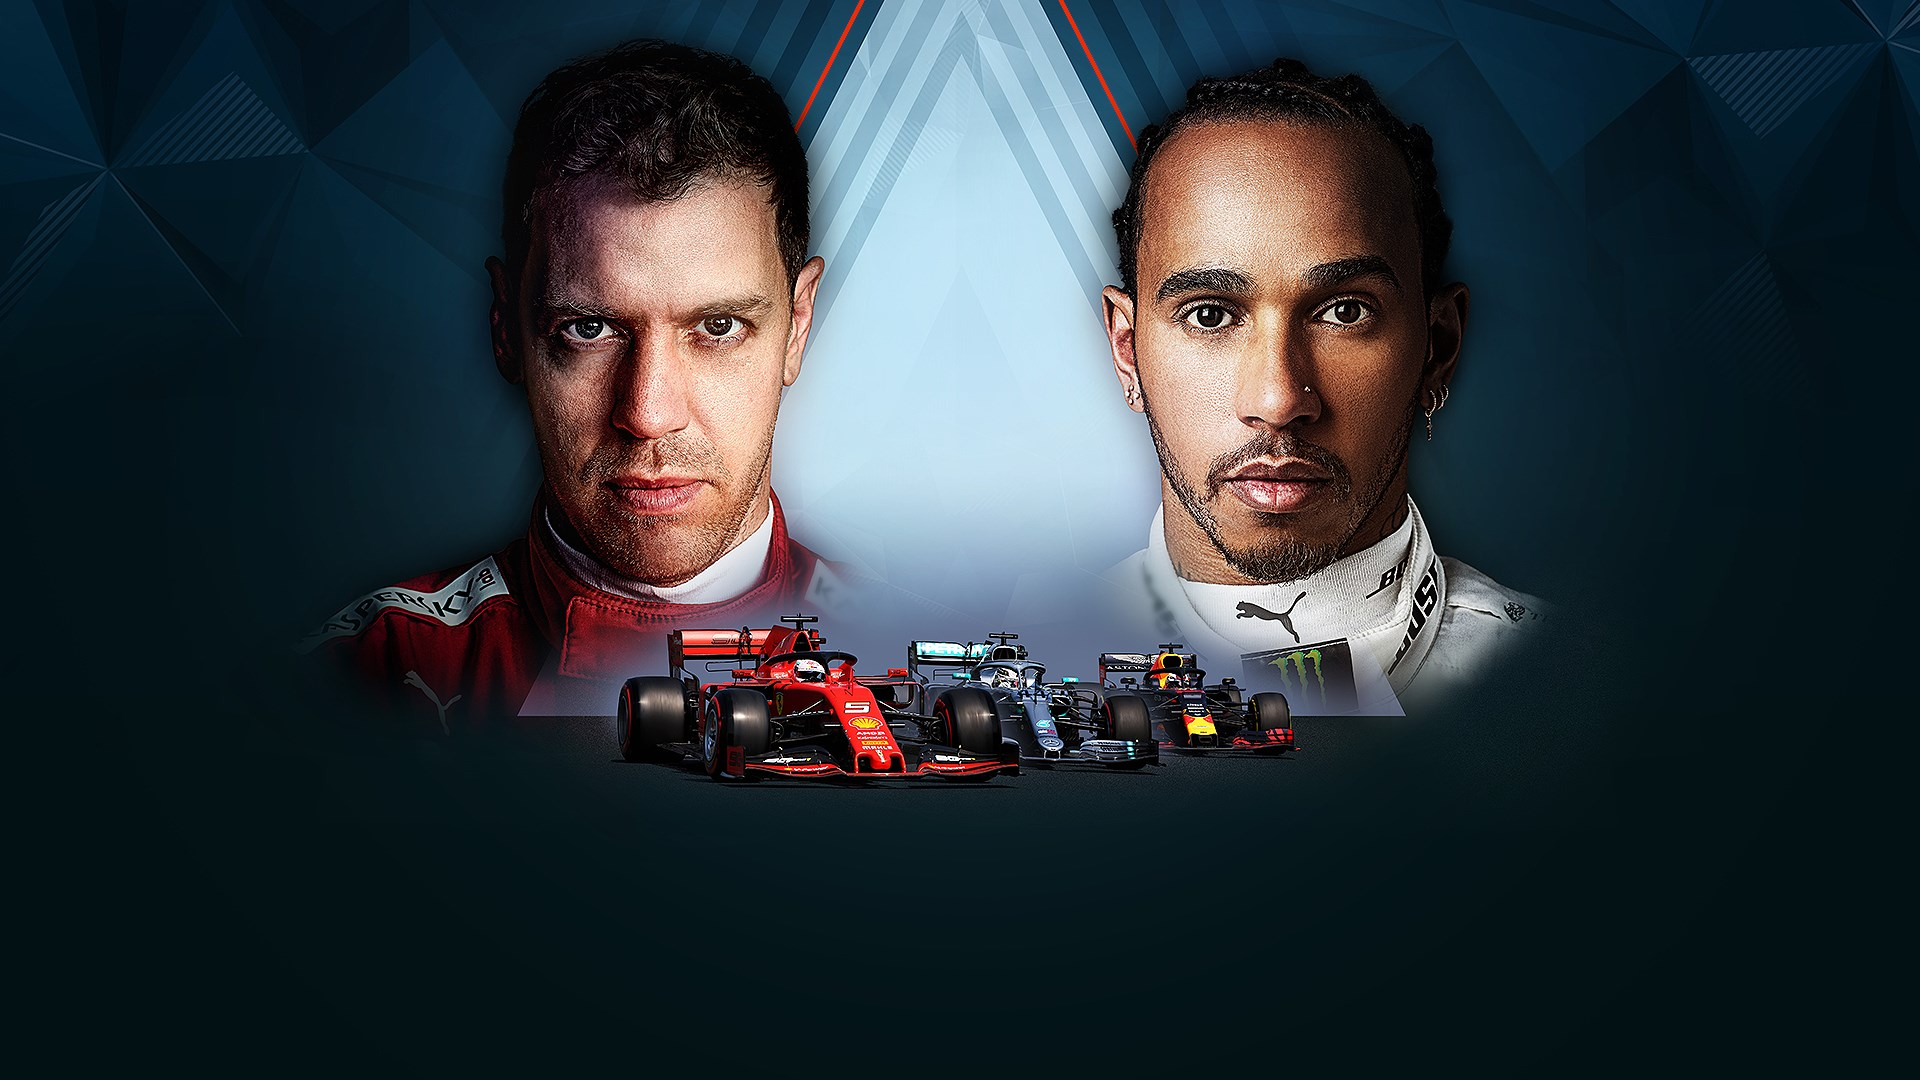 F1 2019 for PS4, XB1, PC Reviews - OpenCritic